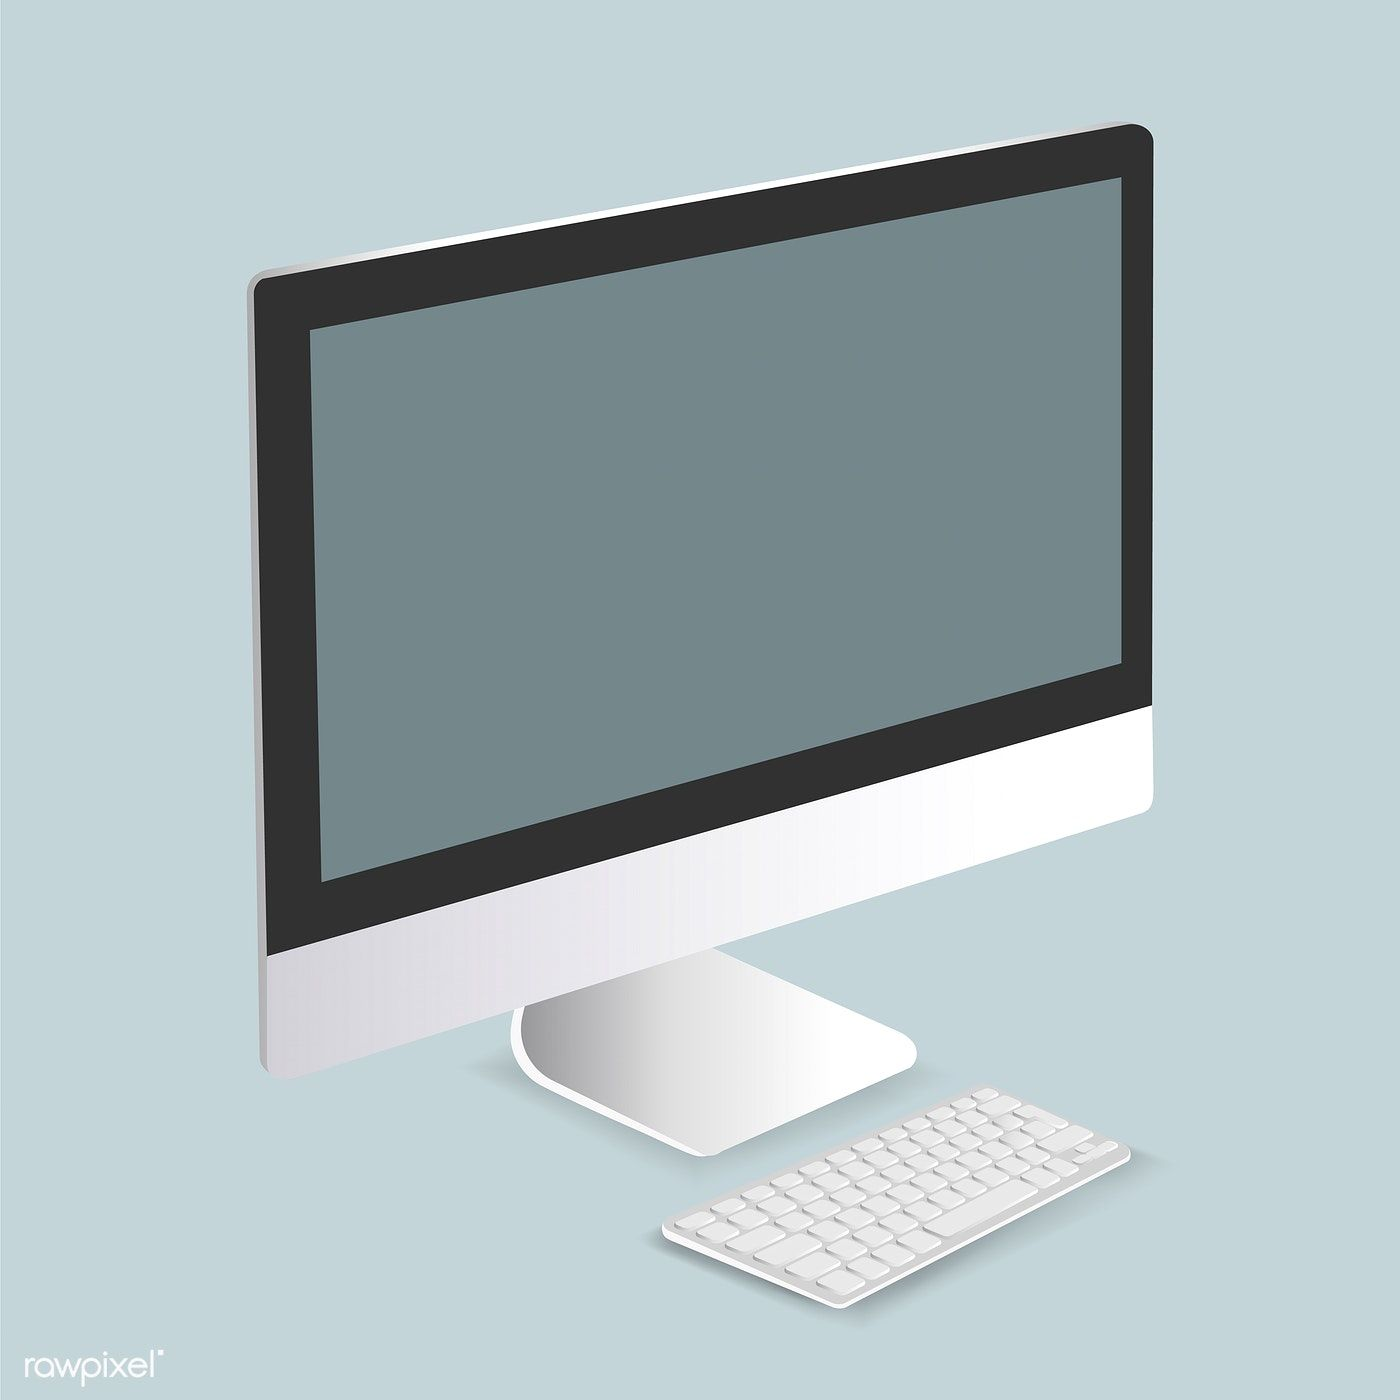 Vector Of Computer Monitor Icon Free Image By Rawpixel Com Computer Vector Computer Vector Free